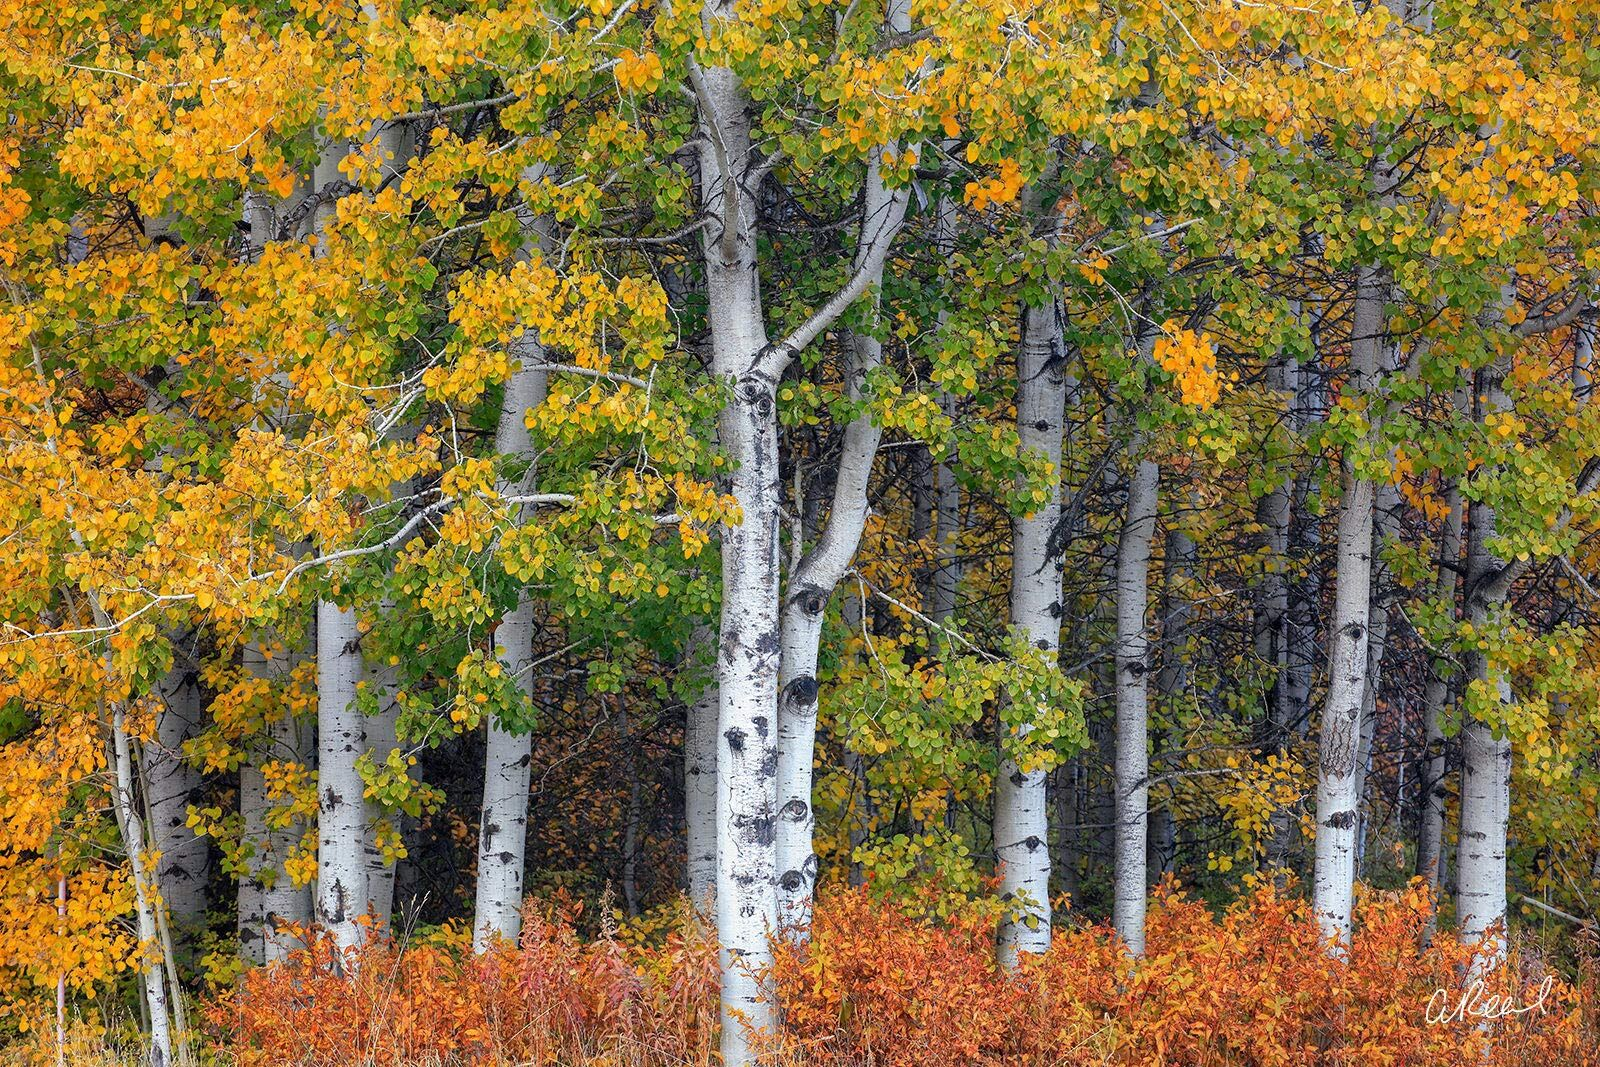 A photograph of five short aspen trees with yellow and green leaves.